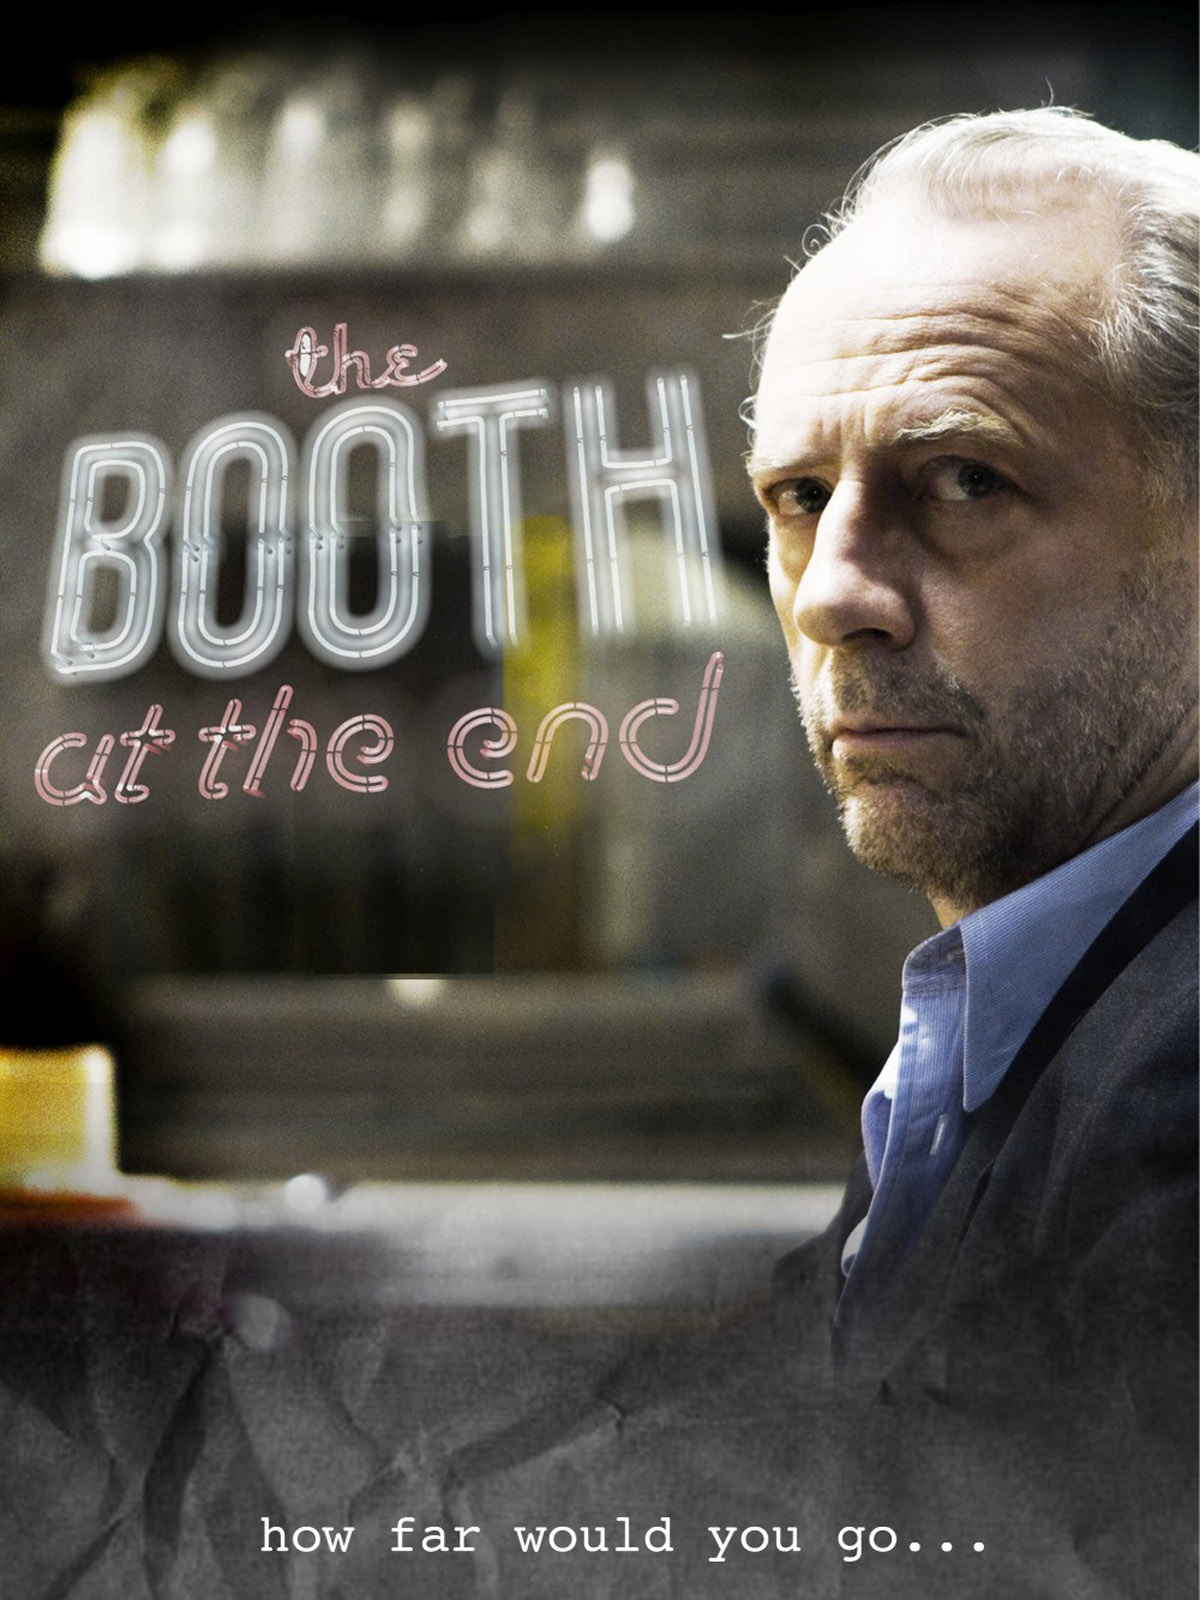 Affiche de la série The Booth at the End